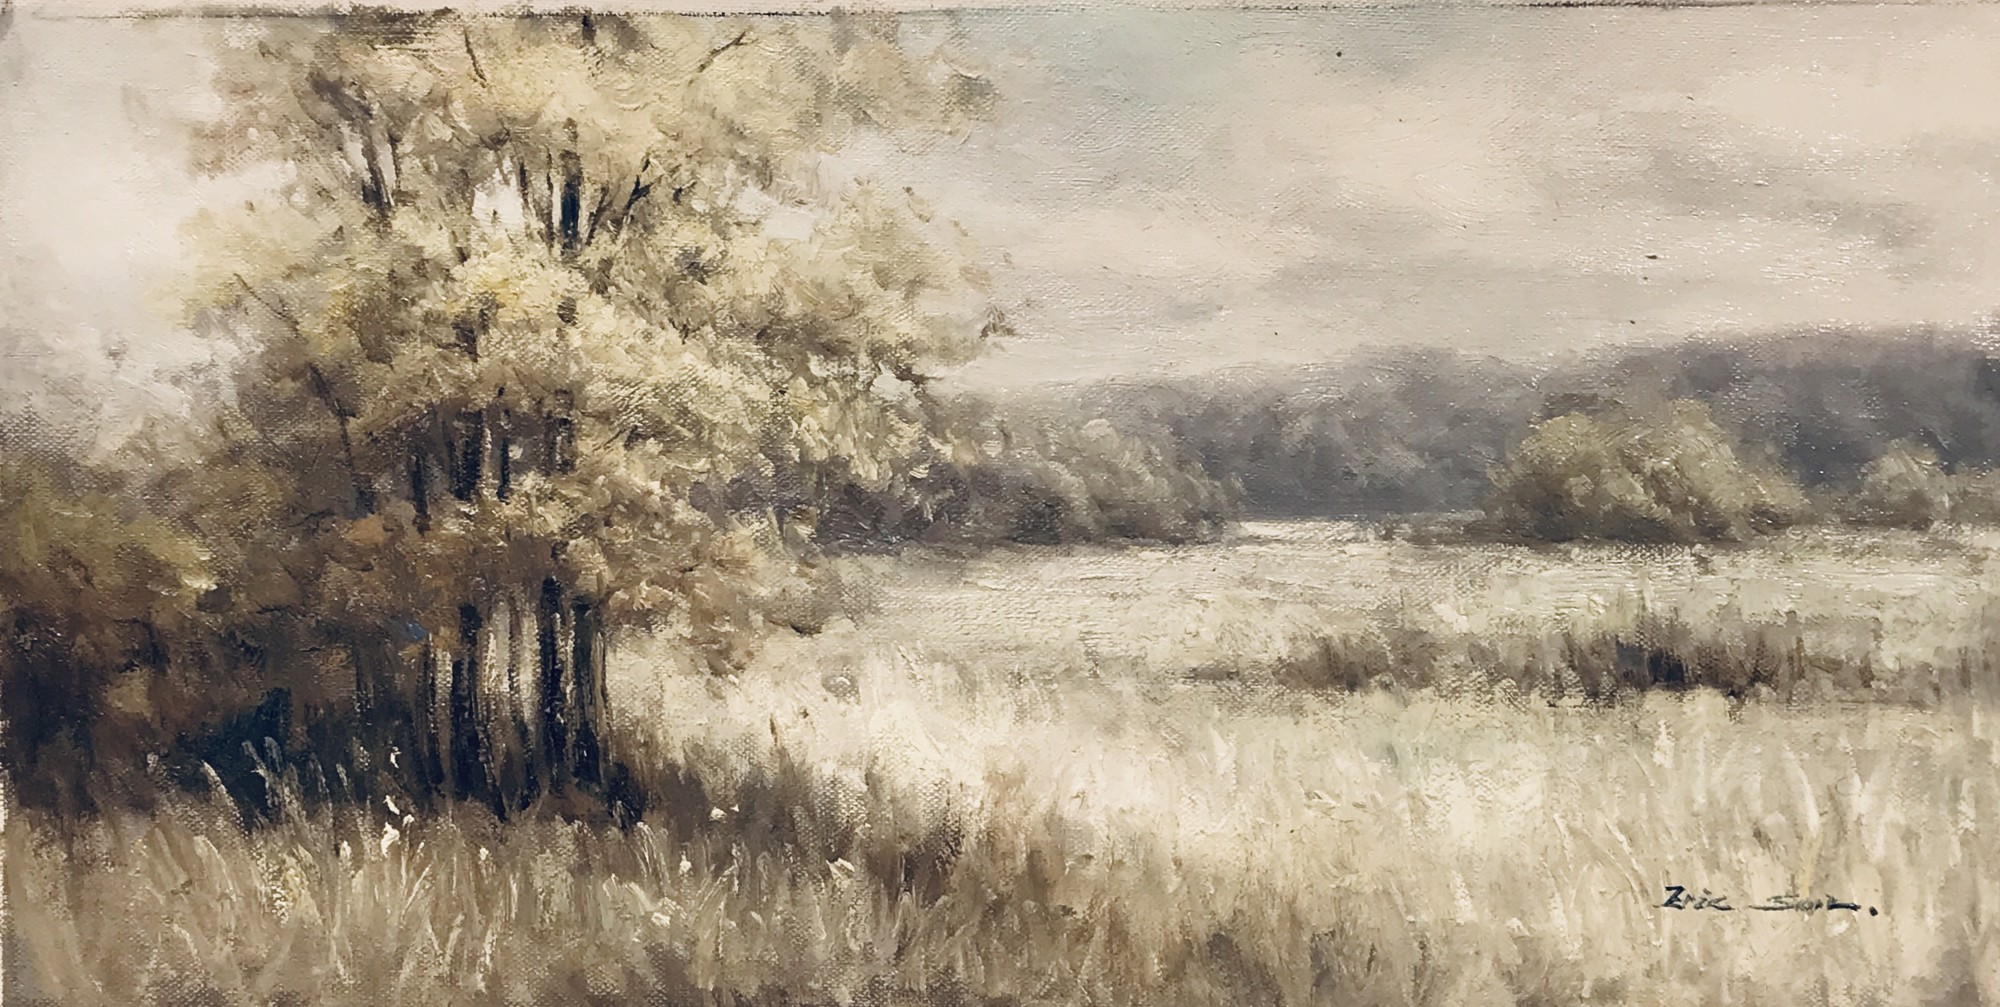 CREAMY DREAMY LANDSCAPE by ERIC SON